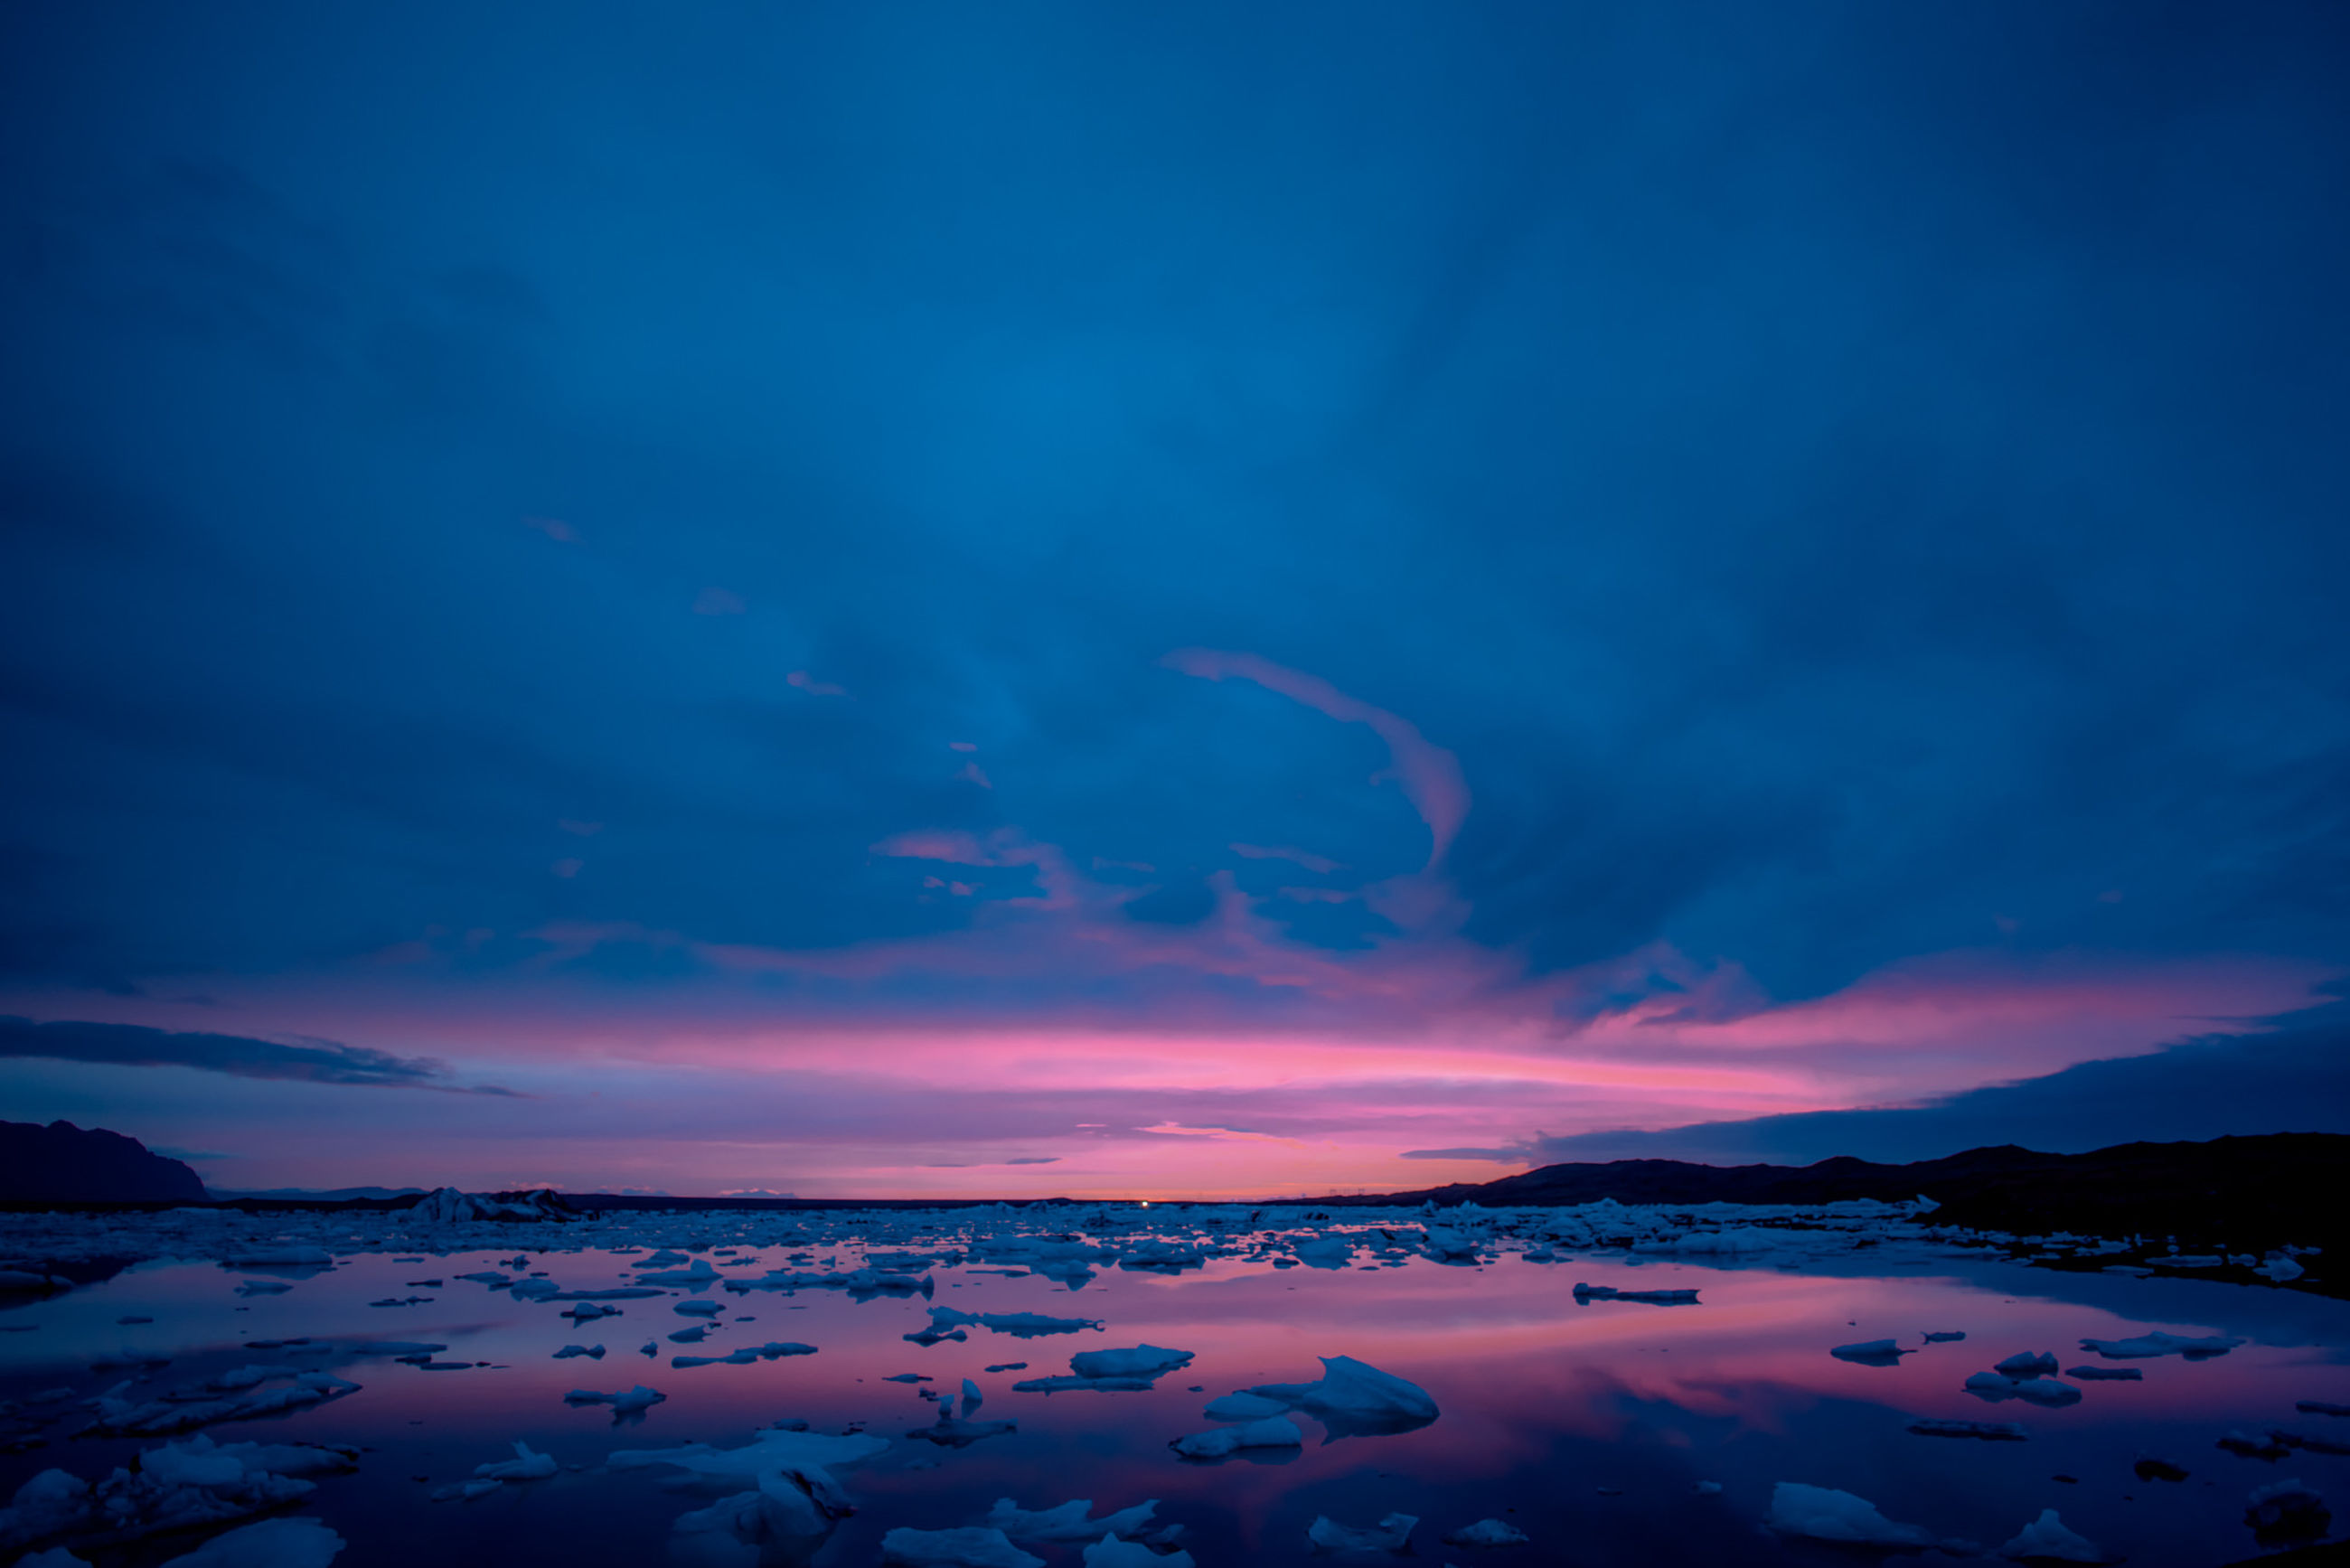 cloud - sky, sky, beauty in nature, scenics - nature, tranquil scene, tranquility, water, no people, nature, idyllic, non-urban scene, blue, sunset, winter, cold temperature, night, snow, dramatic sky, purple